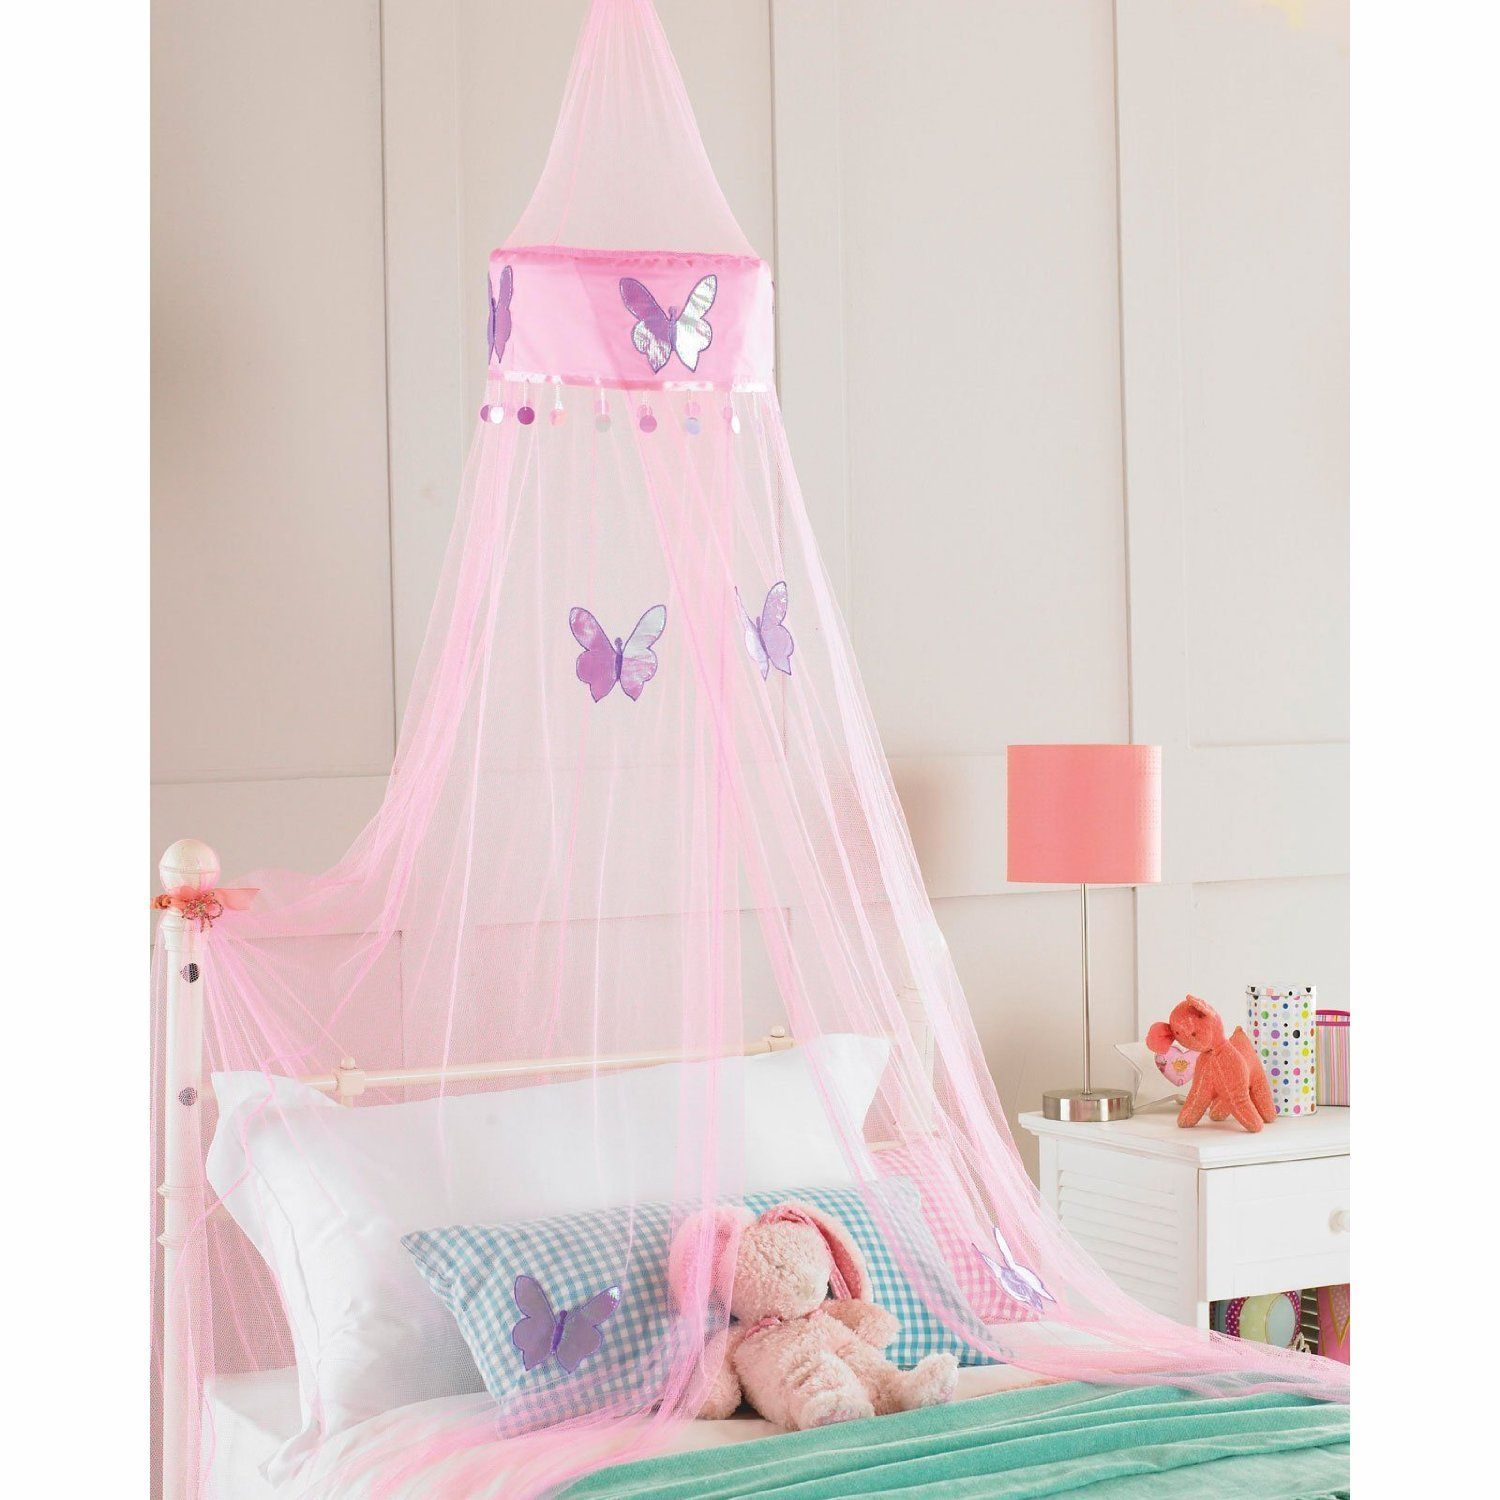 12.49 childrens girls bed canopy mosquito fly netting net 30x230cm